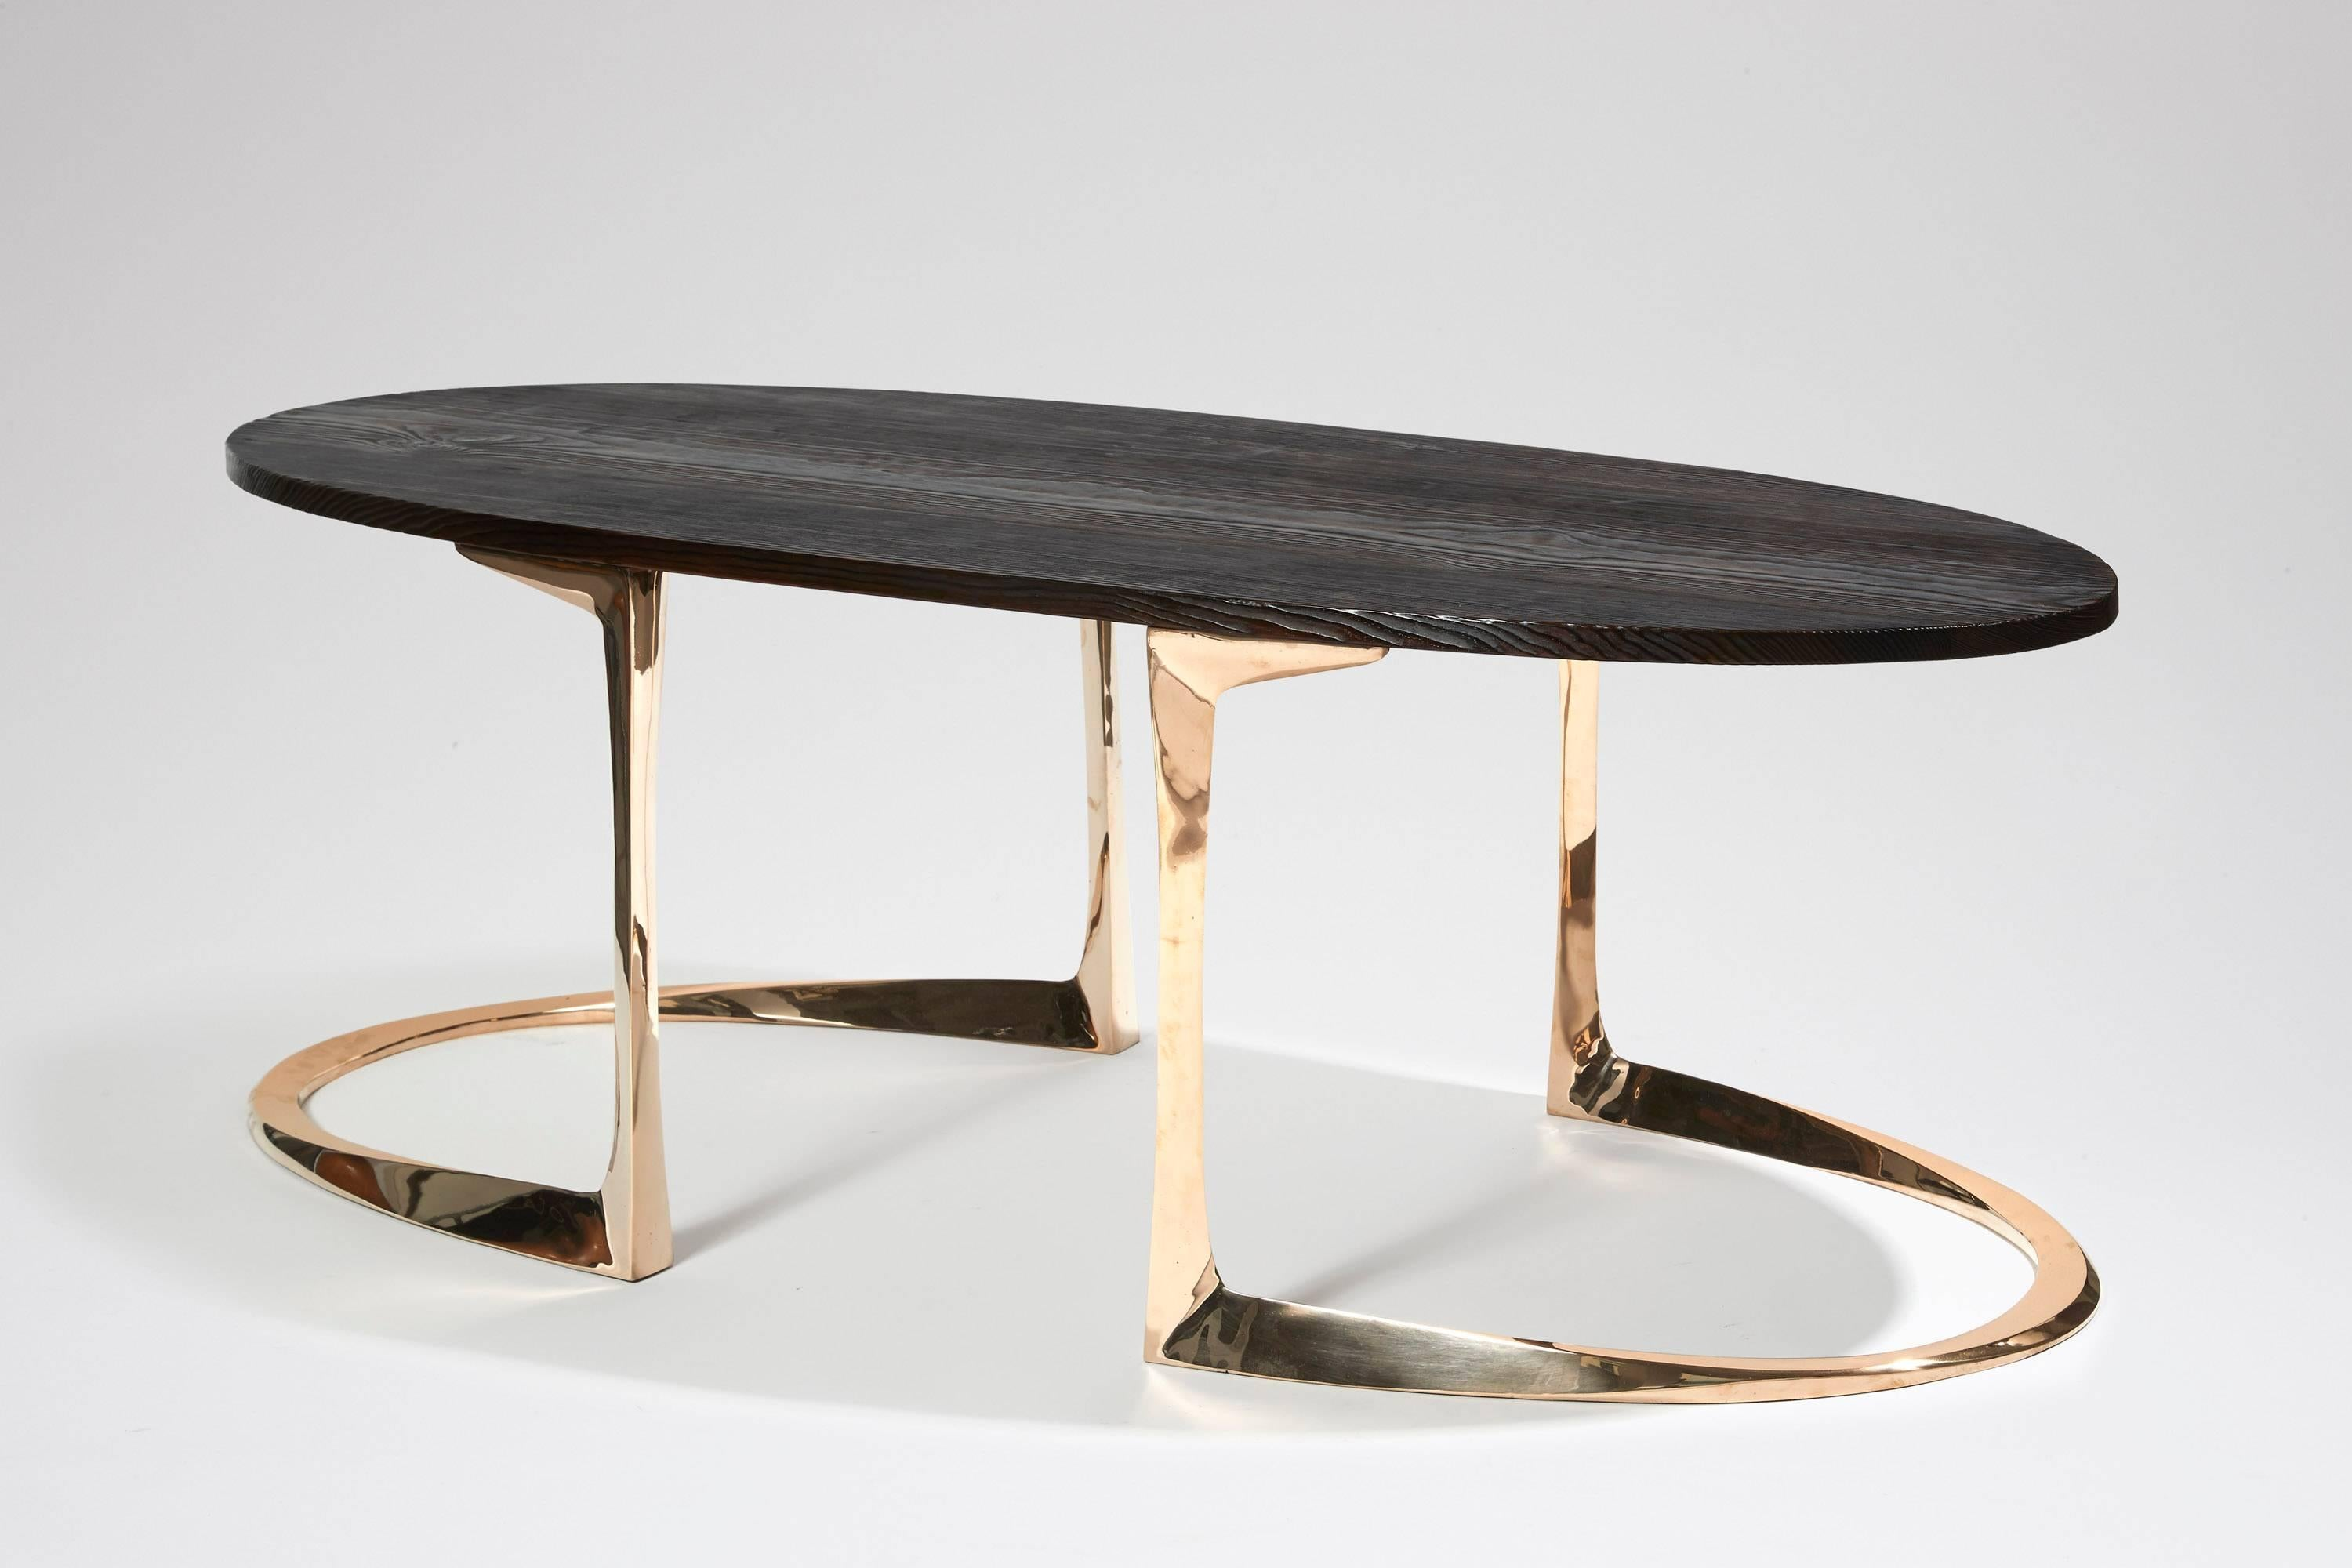 Table Basse Studio Bronze And Burnt Pinewood Coffee Table By Anasthasia Millot Wh Studio